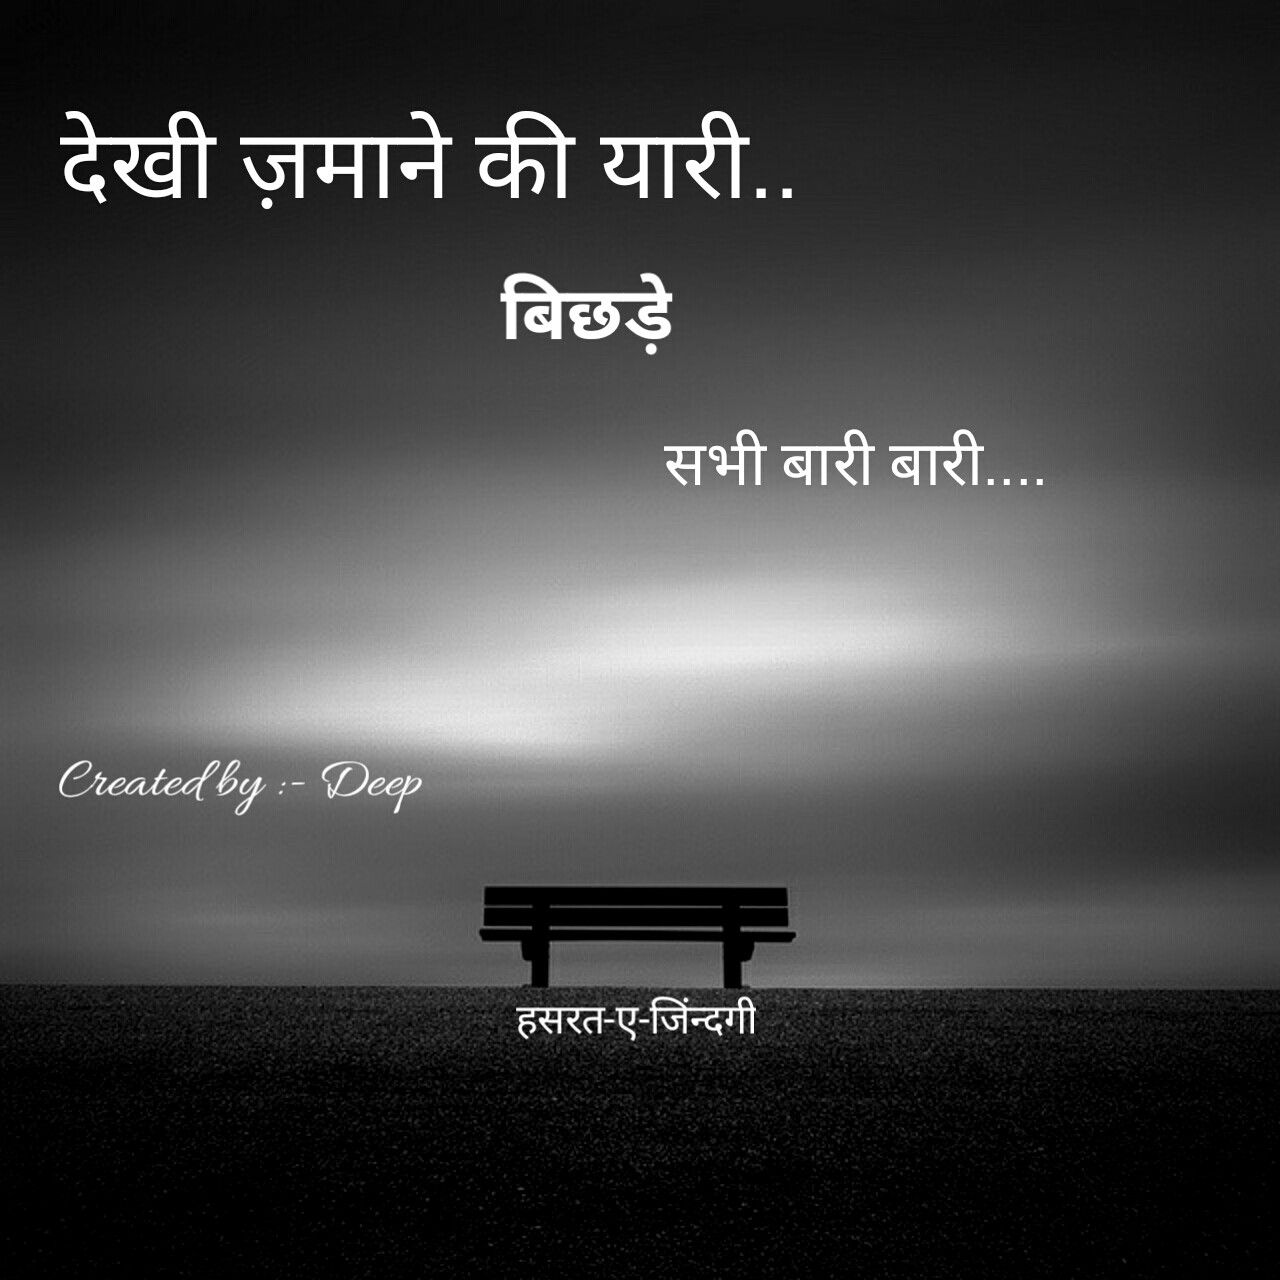 Pin by Deep on दर्द Morning images, Hindi quotes, Image